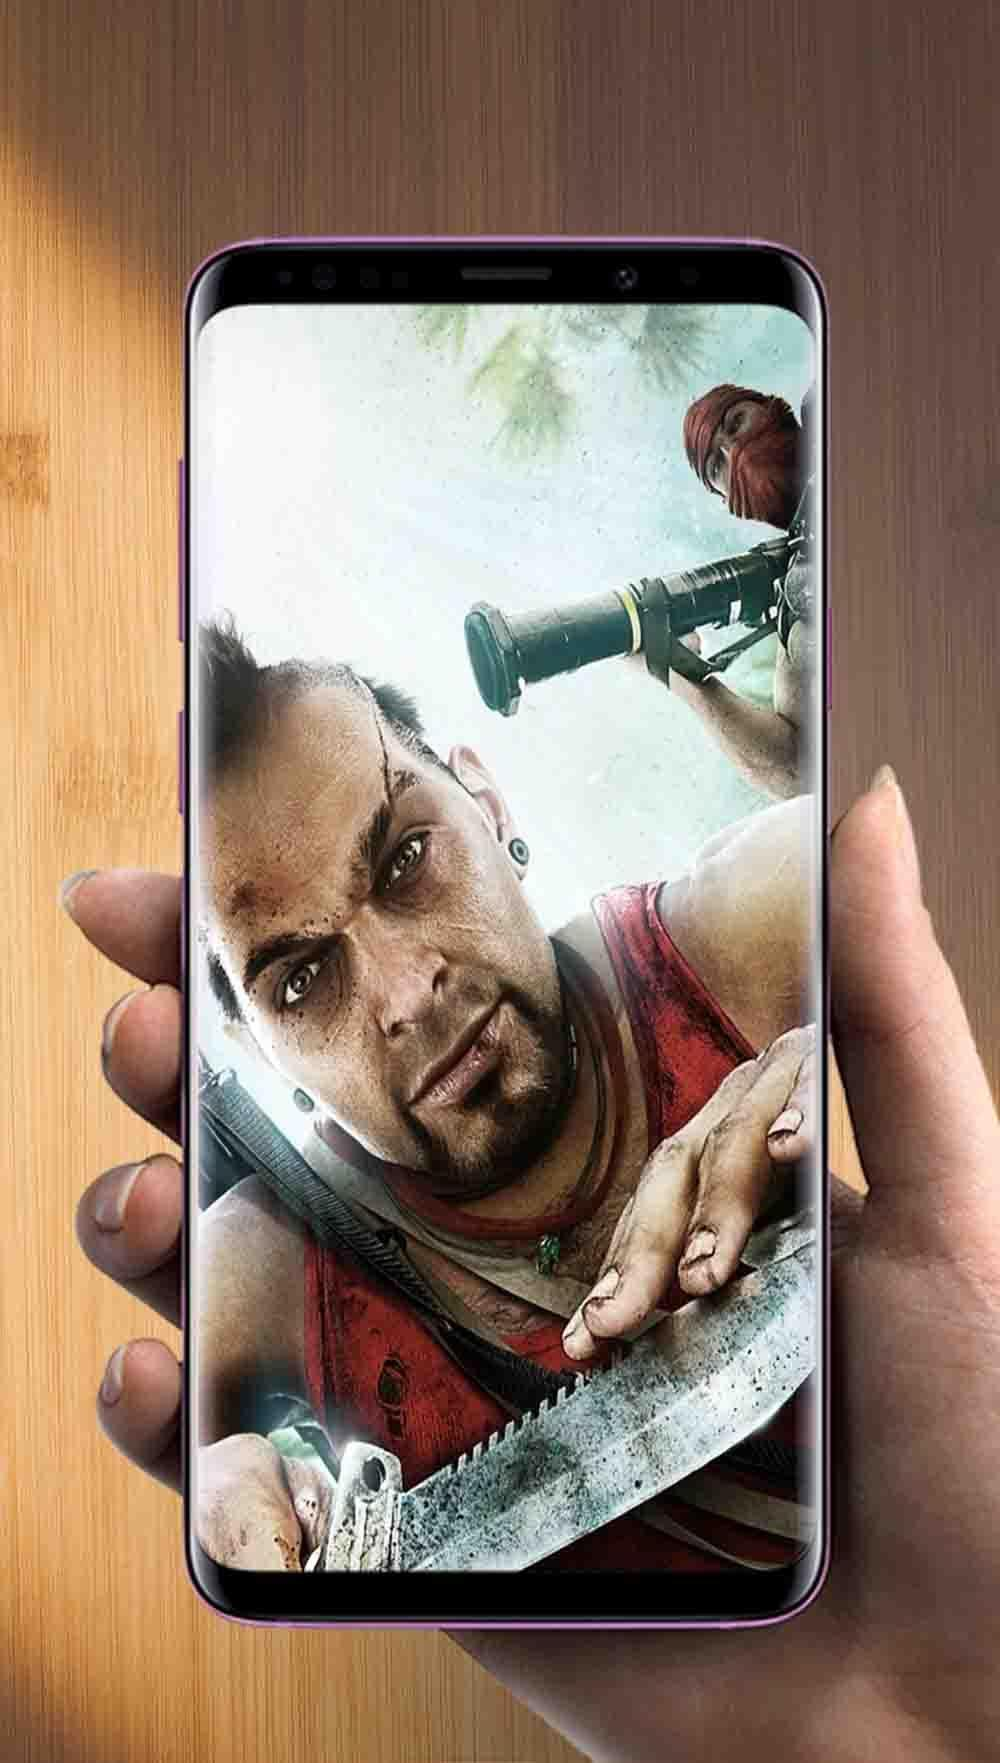 Far Cry 5 Wallpapers New Hd For Android Apk Download